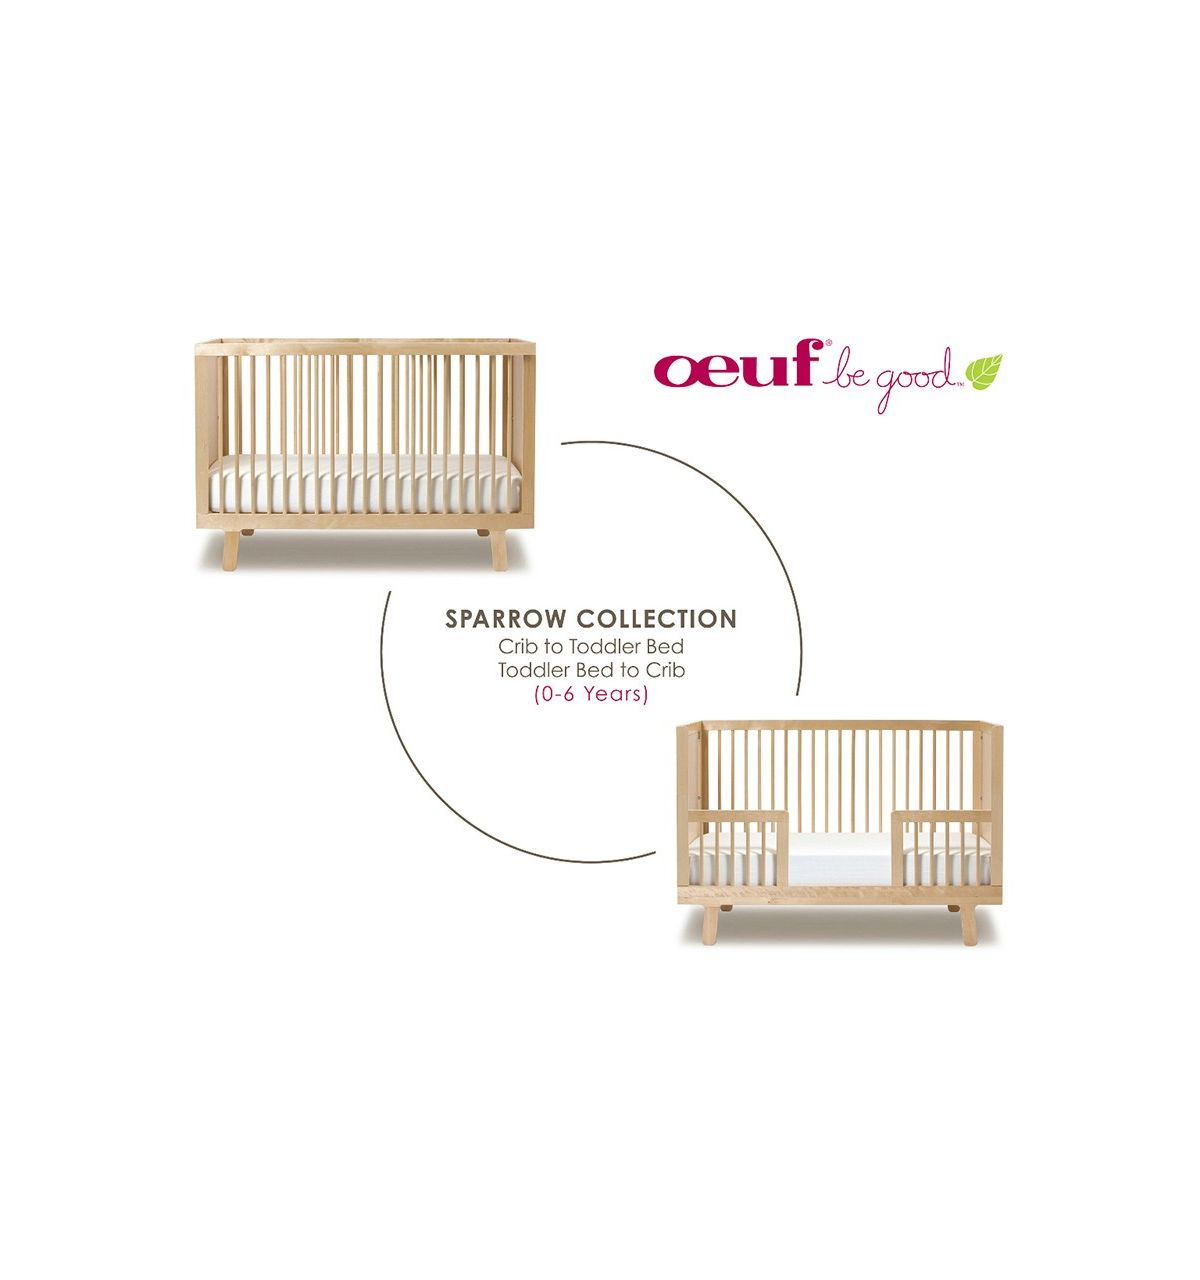 oeuf sparrow crib - Oeuf Sparrow Crib